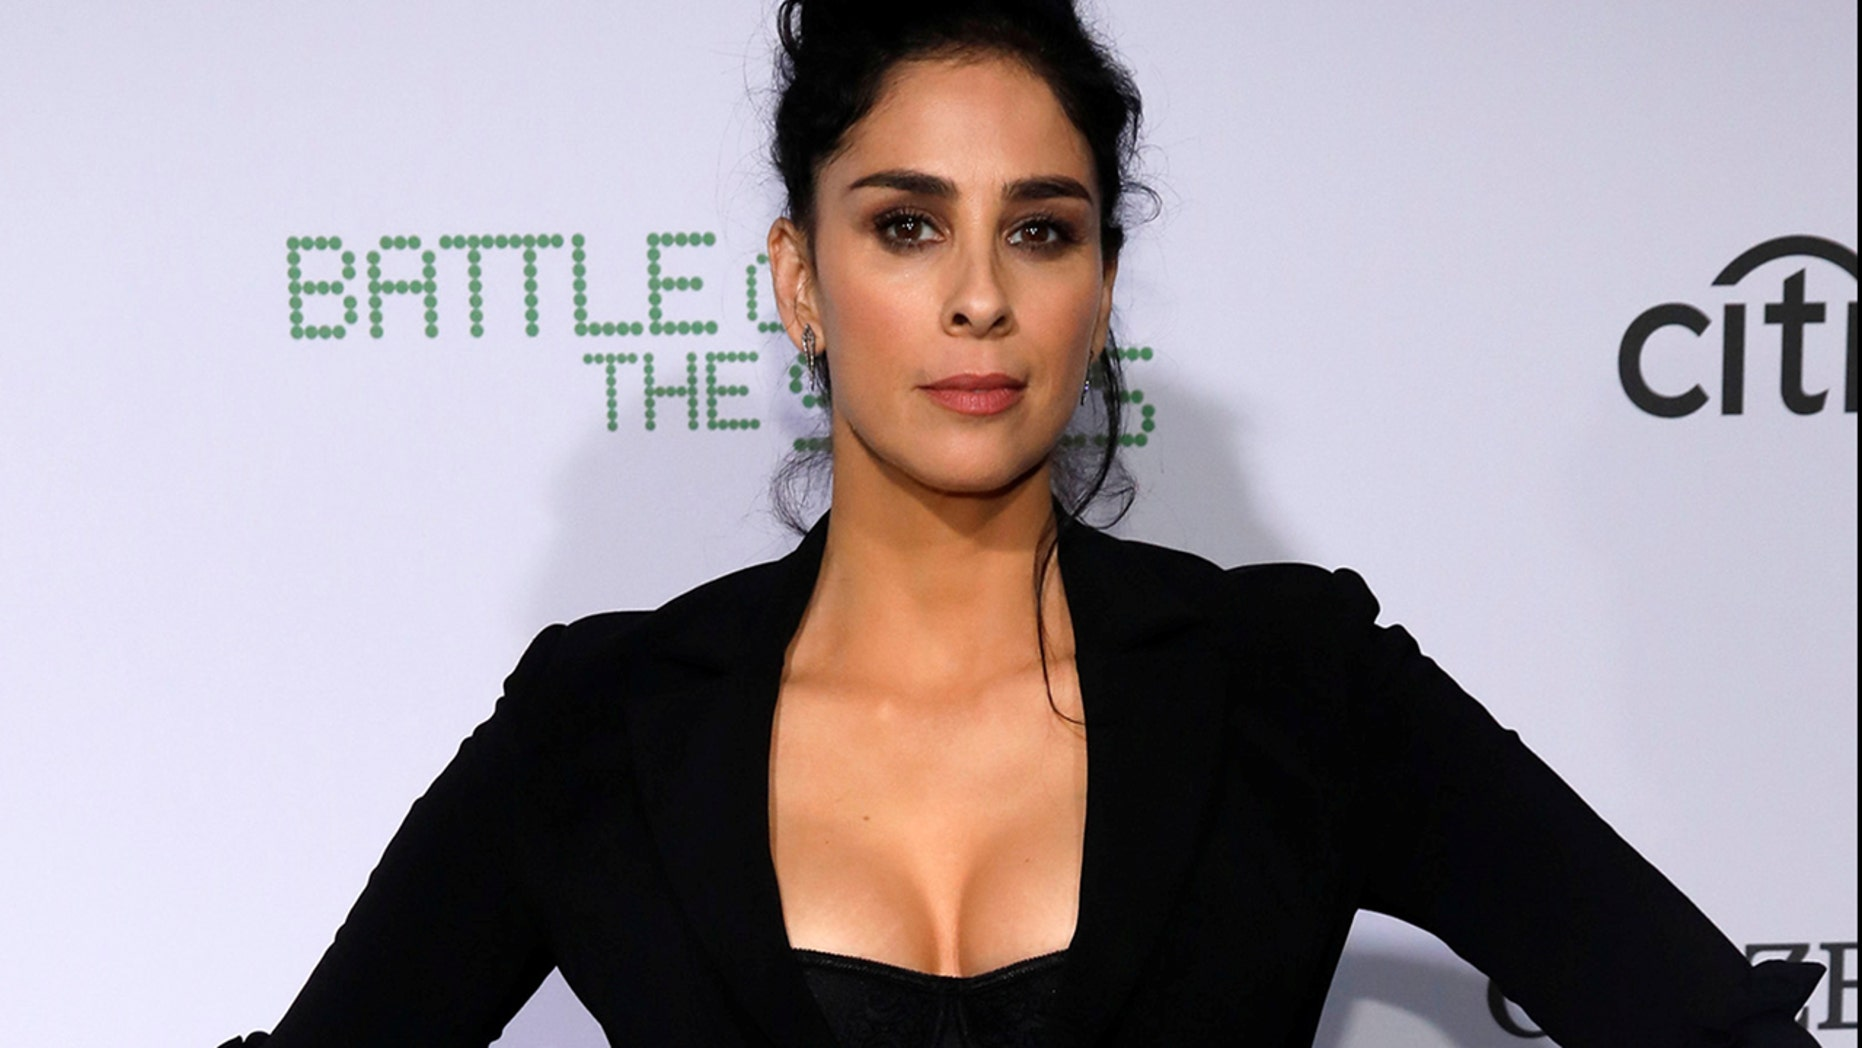 Watch Sarah Silverman video